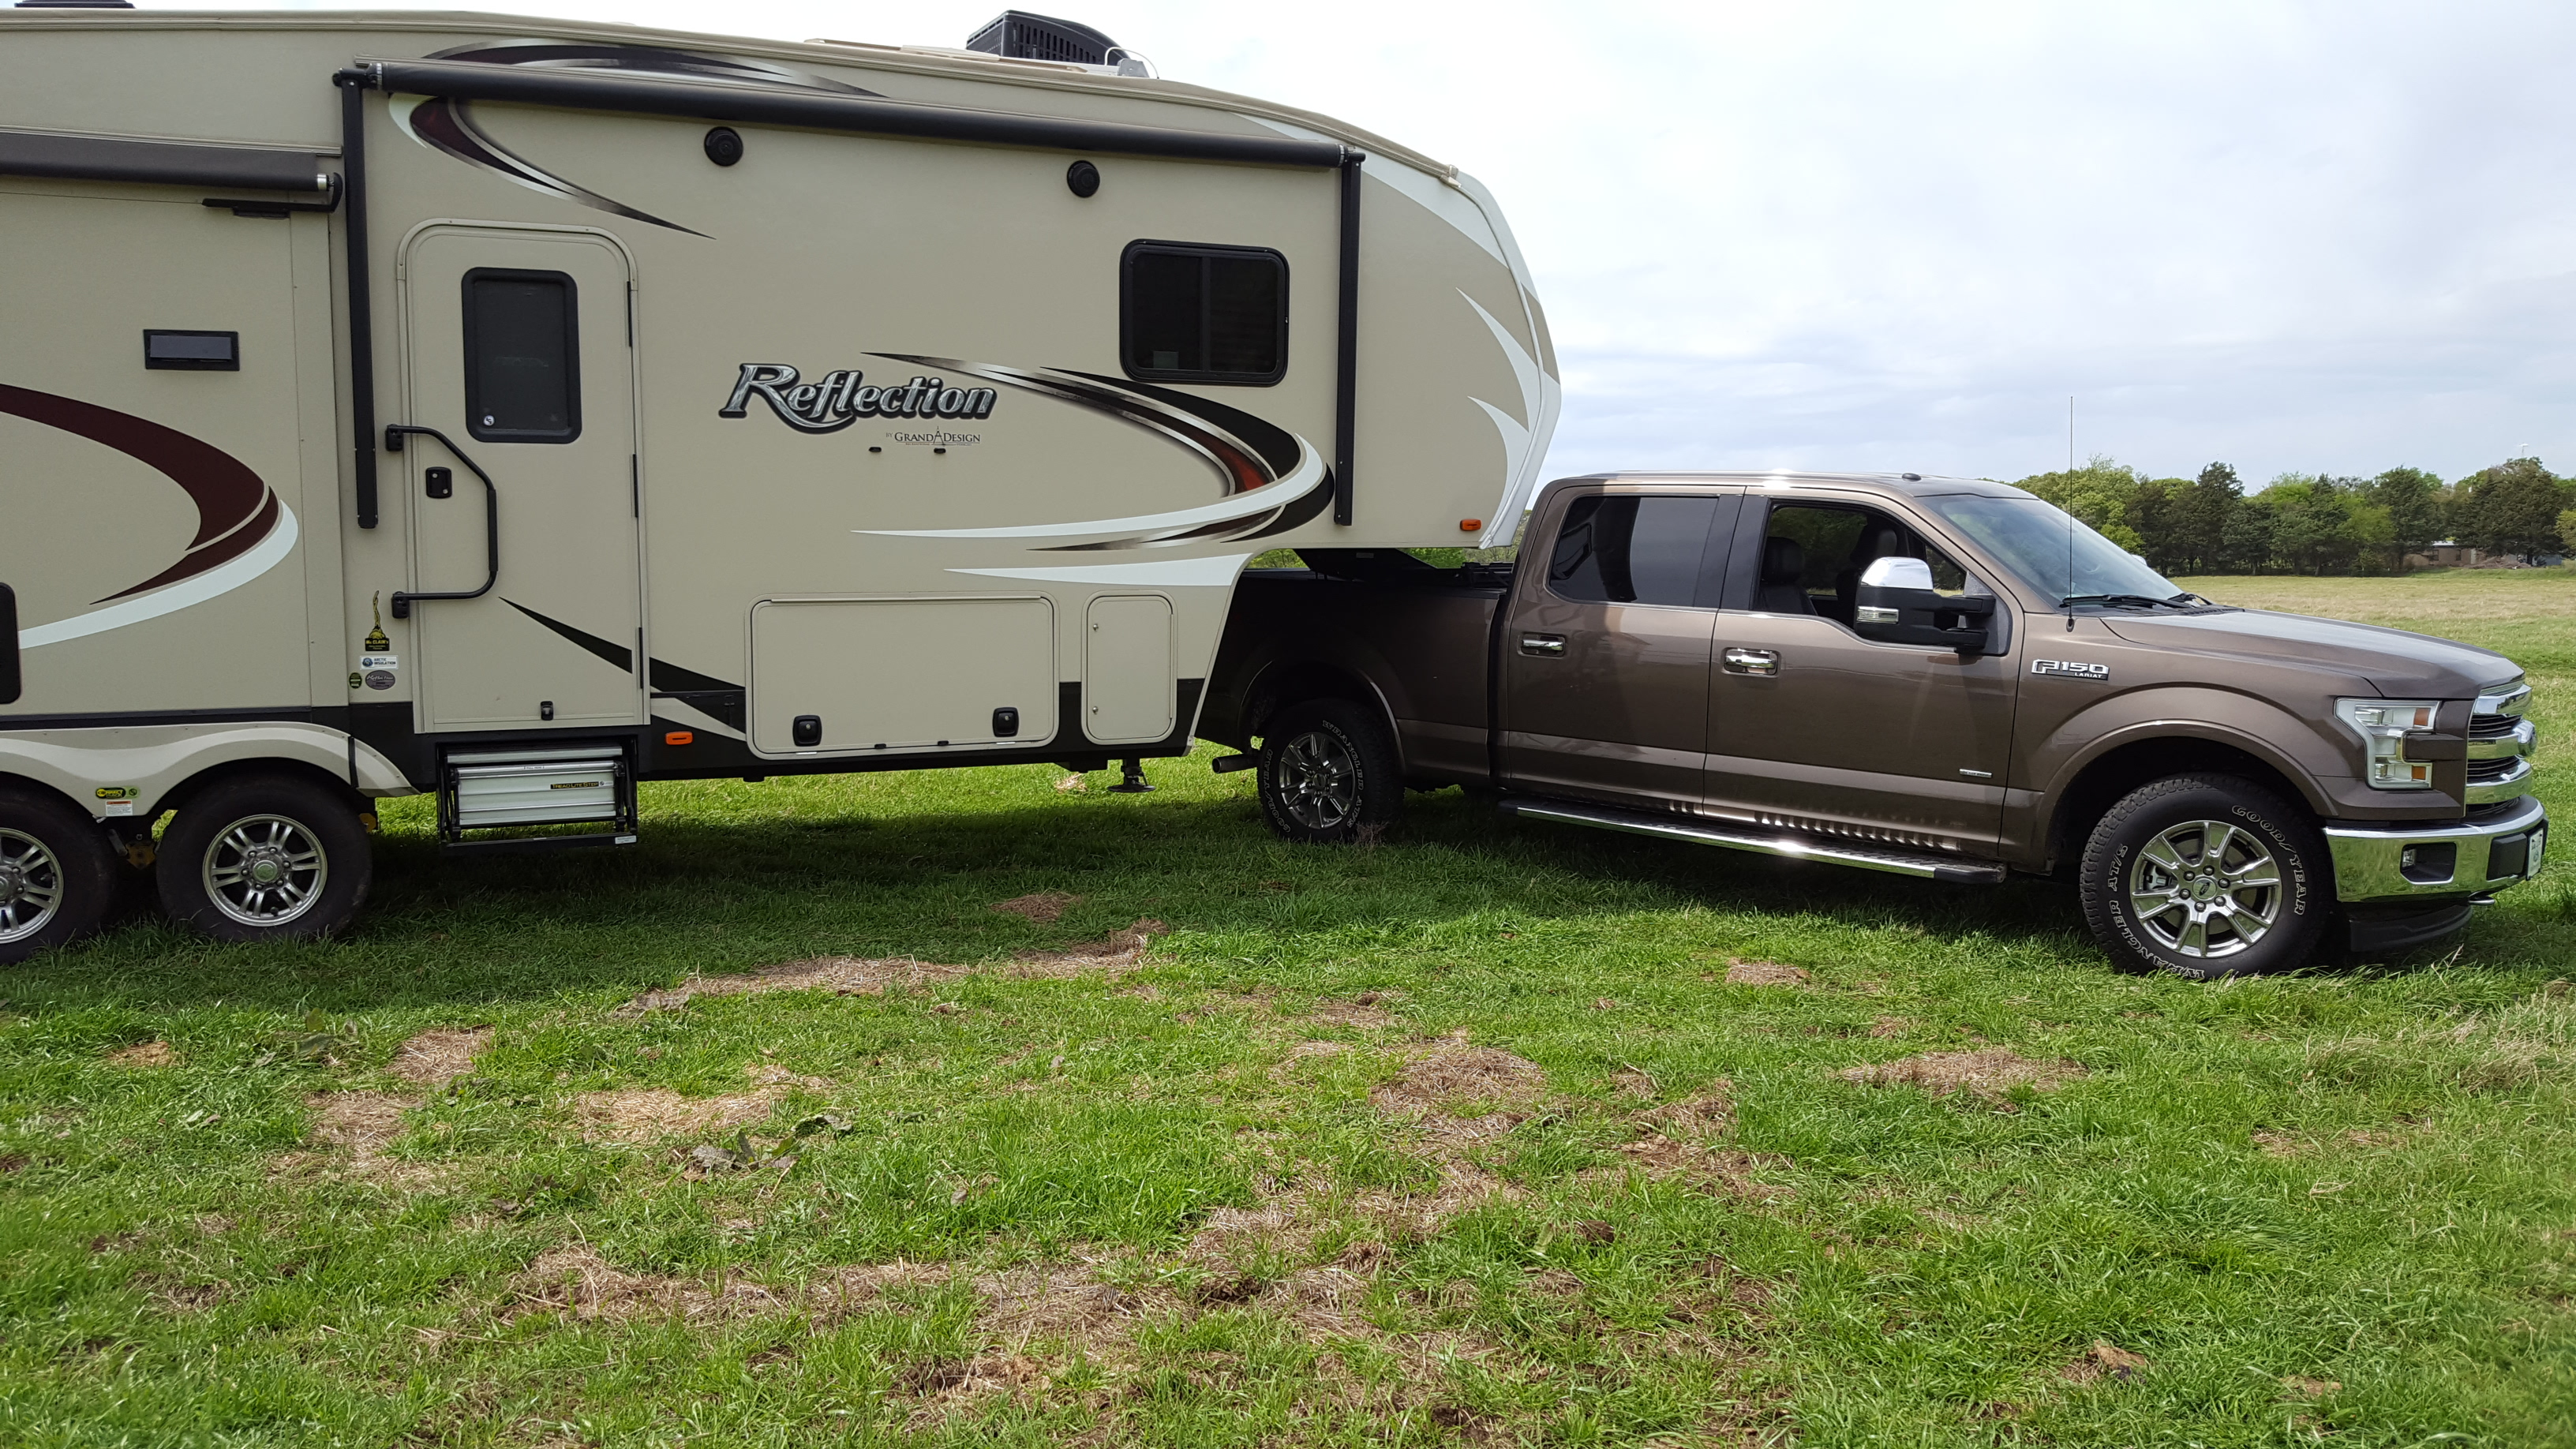 Ford F250 Towing Capacity >> Andersen 5th wheel hitch - Page 2